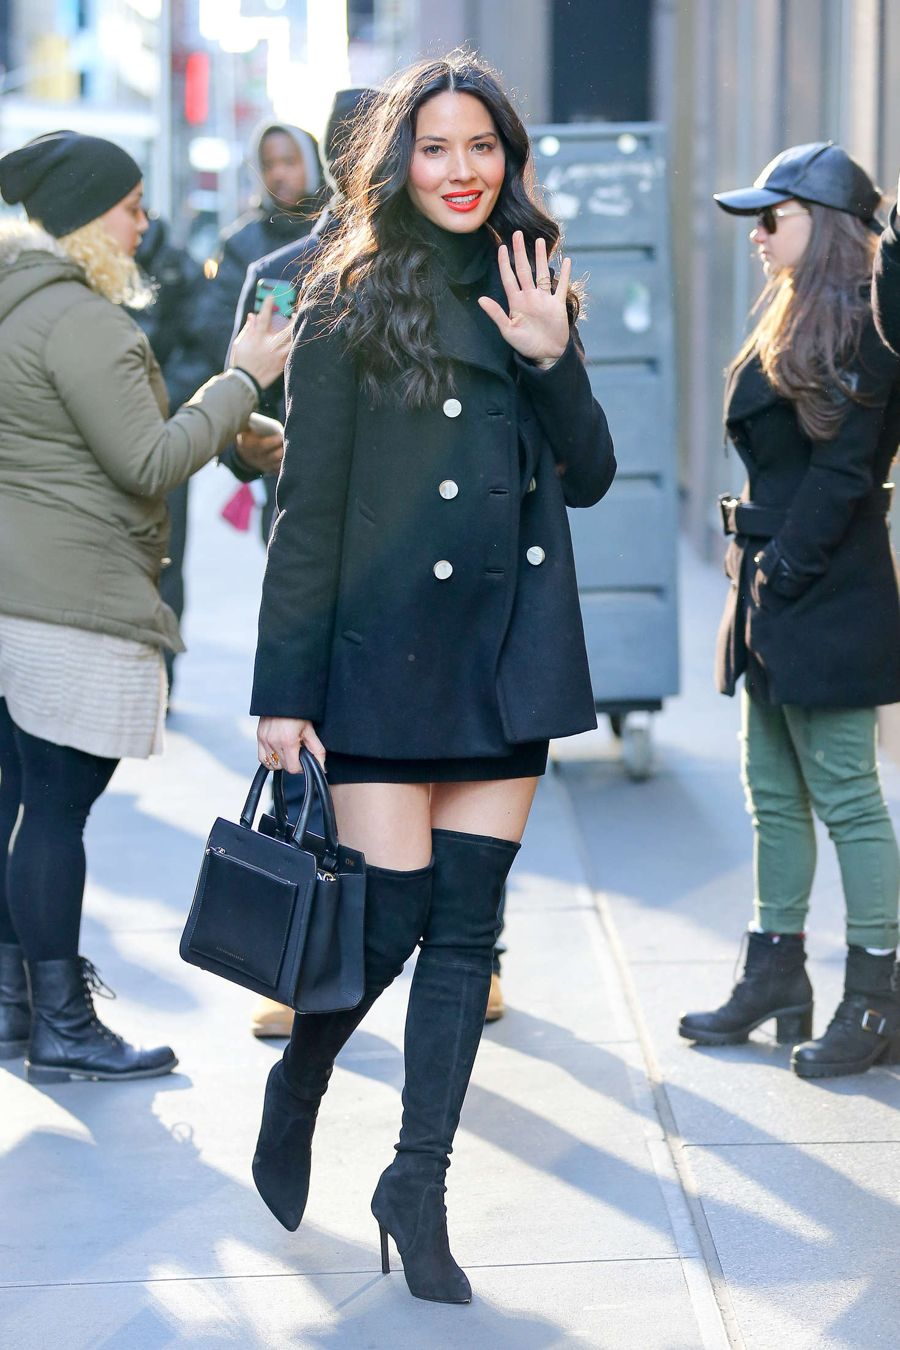 Olivia Munn in Short Dress out in New York